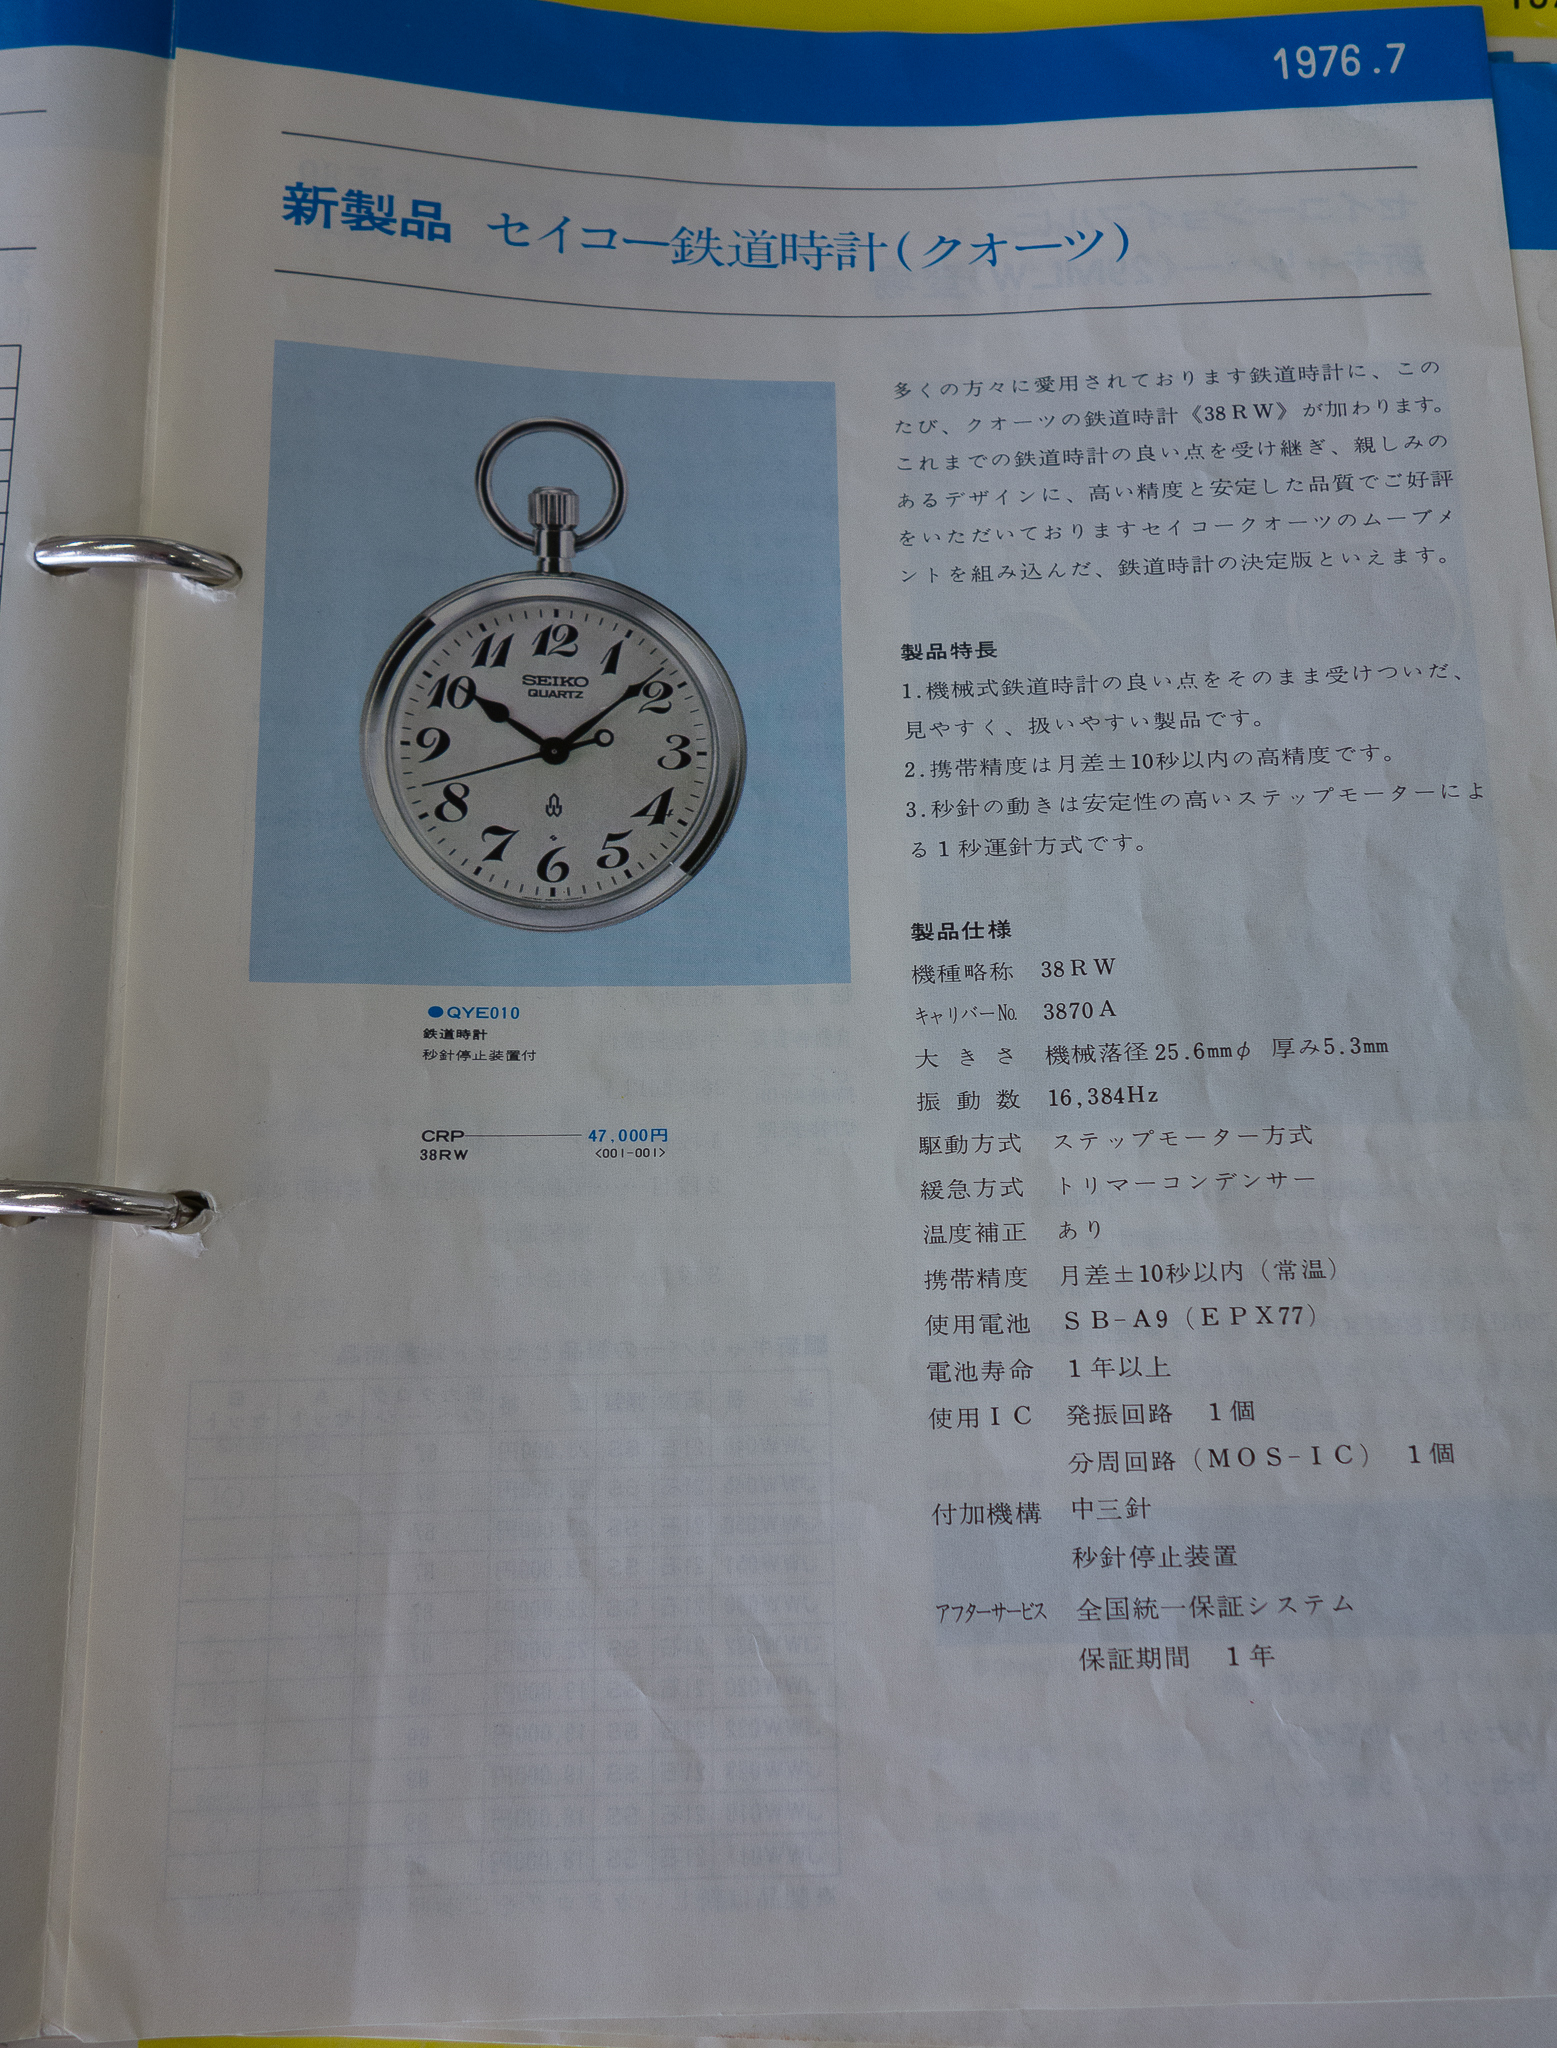 Seiko News 1976 July